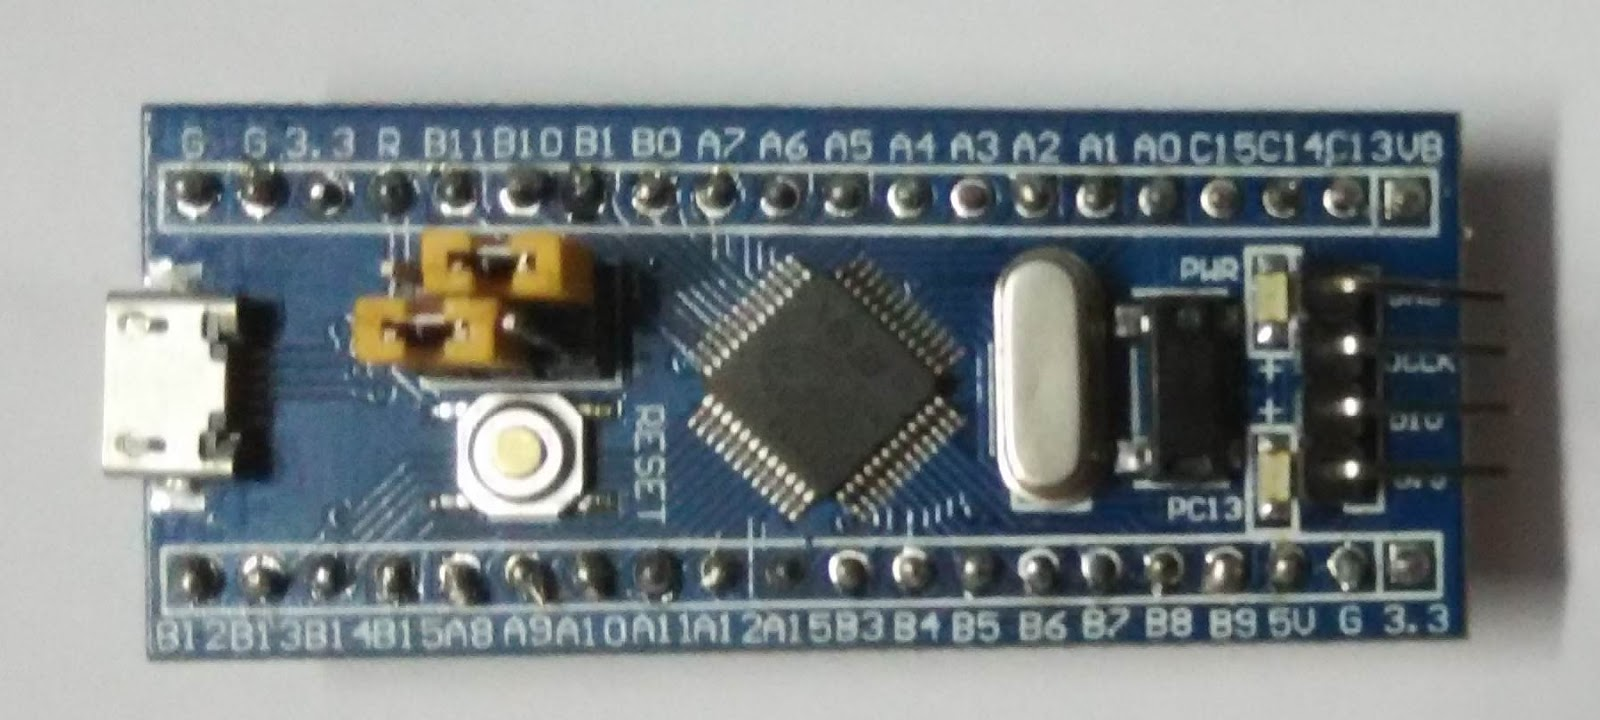 Projects : USB Boot Loader (Device-Firmware-Upgrade) for STM32F103C8T6